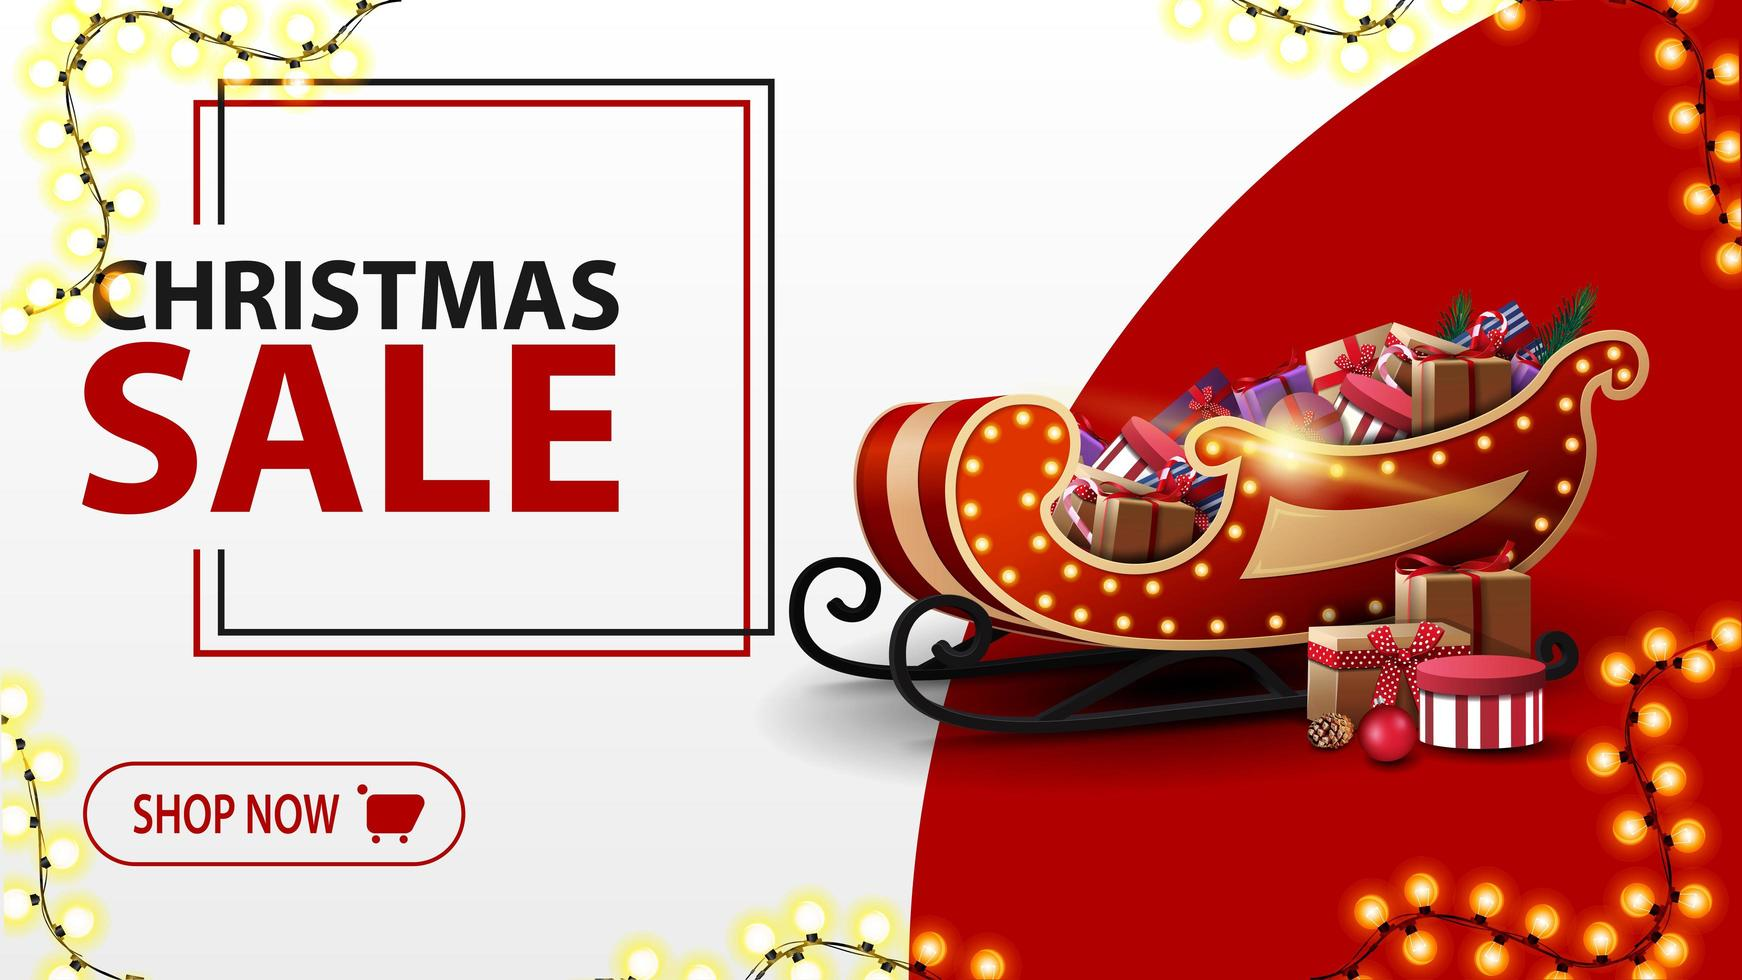 Christmas sale, white and red discount banner in minimalistic style with garland and Santa Sleigh with presents vector